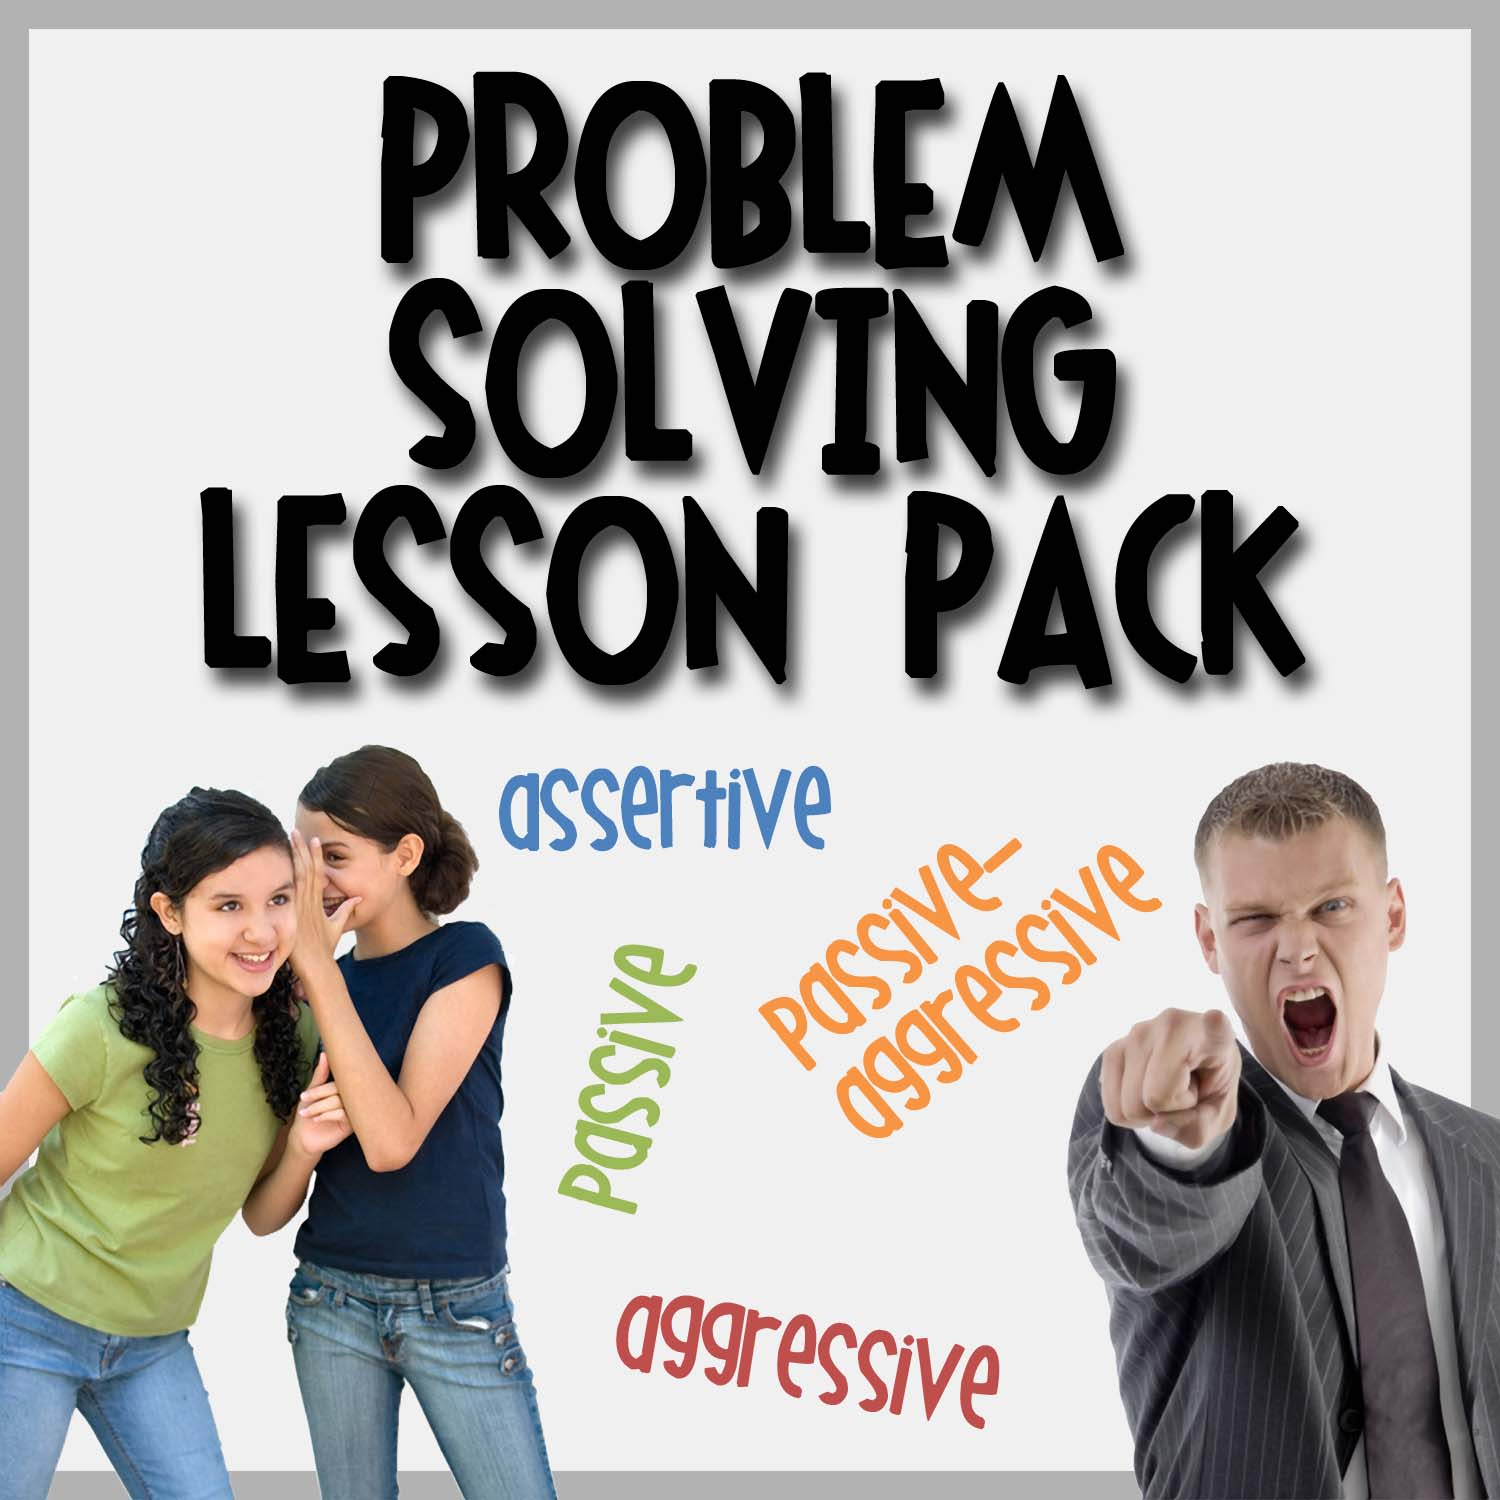 New Product Problem Solving Lesson Pack